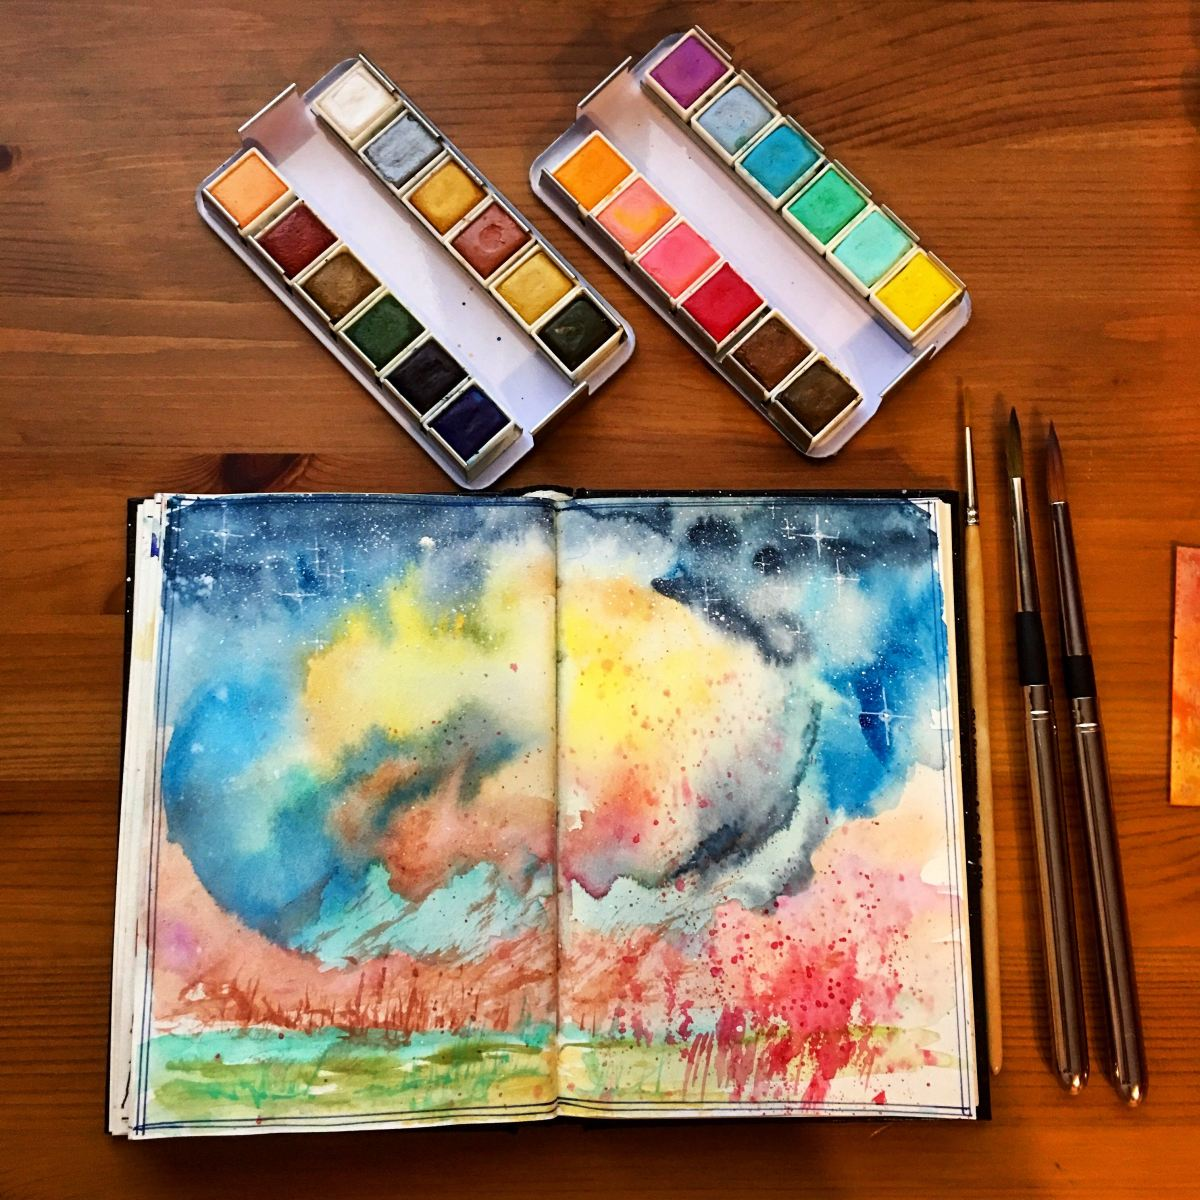 Prima Marketing watercolor confections pastel dreams and decadent pies painting by jessica seacrest in a stillman and Birn journal